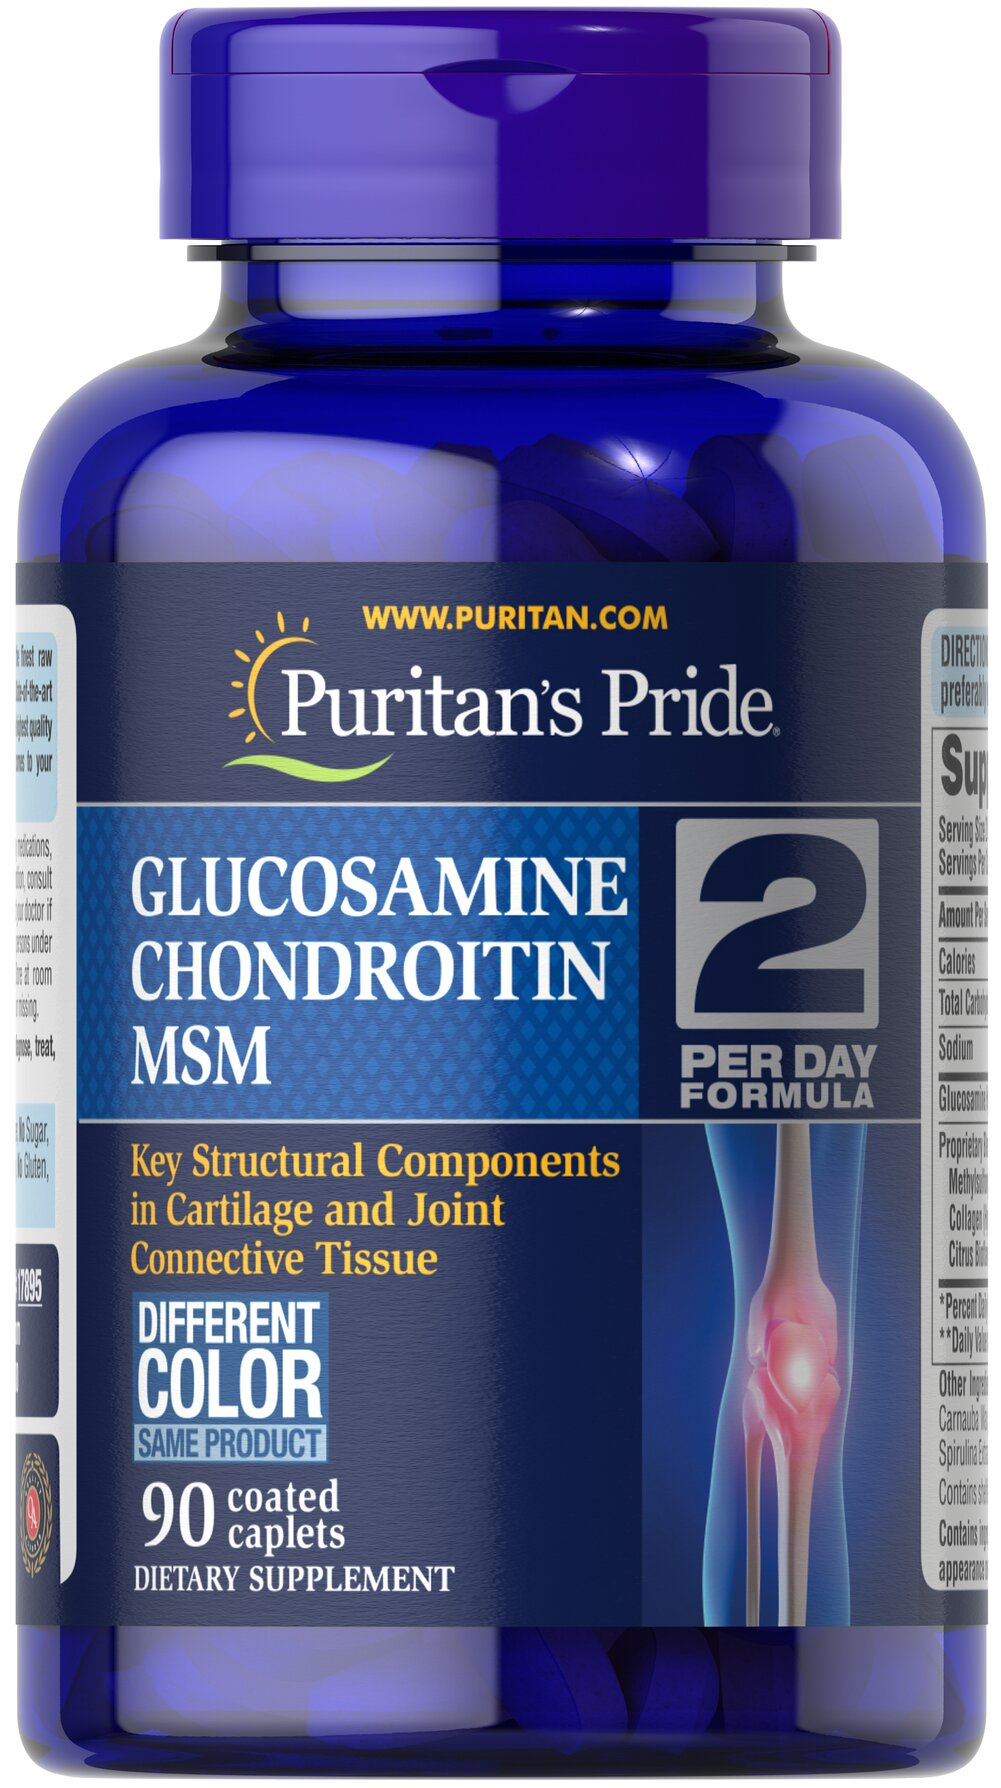 Triple Strength Glucosamine, Chondroitin & MSM Joint Soother® <p>Lubricates joints to improve flexibility**</p>  <p>Supports connective tissue in and around the joints**</p>  <p>Rejuvenates cartilage to encourage joint comfort**</p><p>Triple Strength Glucosamine, Chondroitin and MSM is the most powerful joint soother yet!** Just two caplets per day will give you triple strength protection with 1500 mg of Glucosamine, and 1700 mg of our joint nou